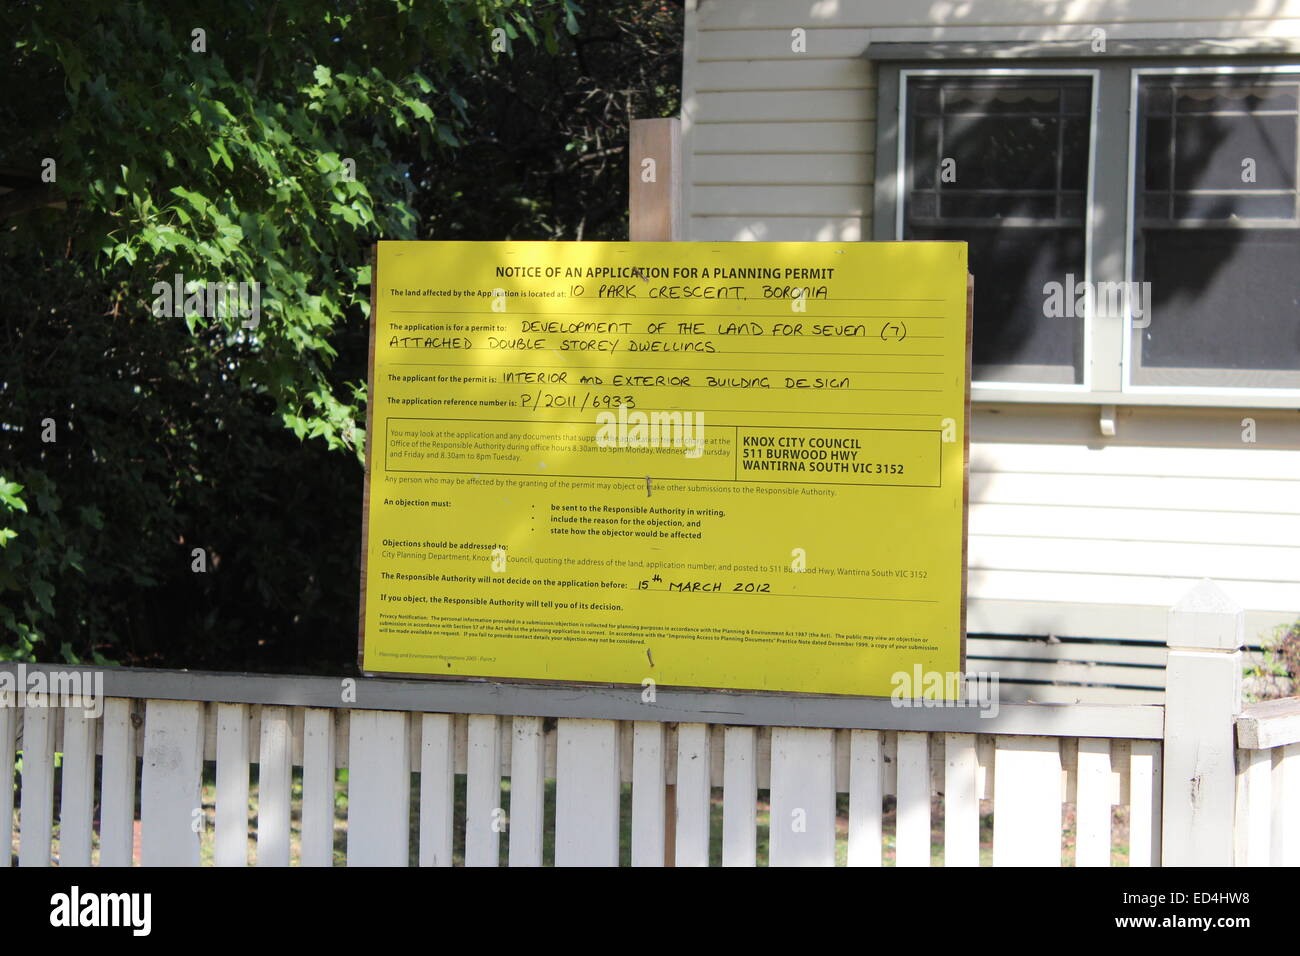 Knox Council (dreaded) 'Yellow Sign' showing application to develop 10 Park Crescent, Boronia. - Stock Image